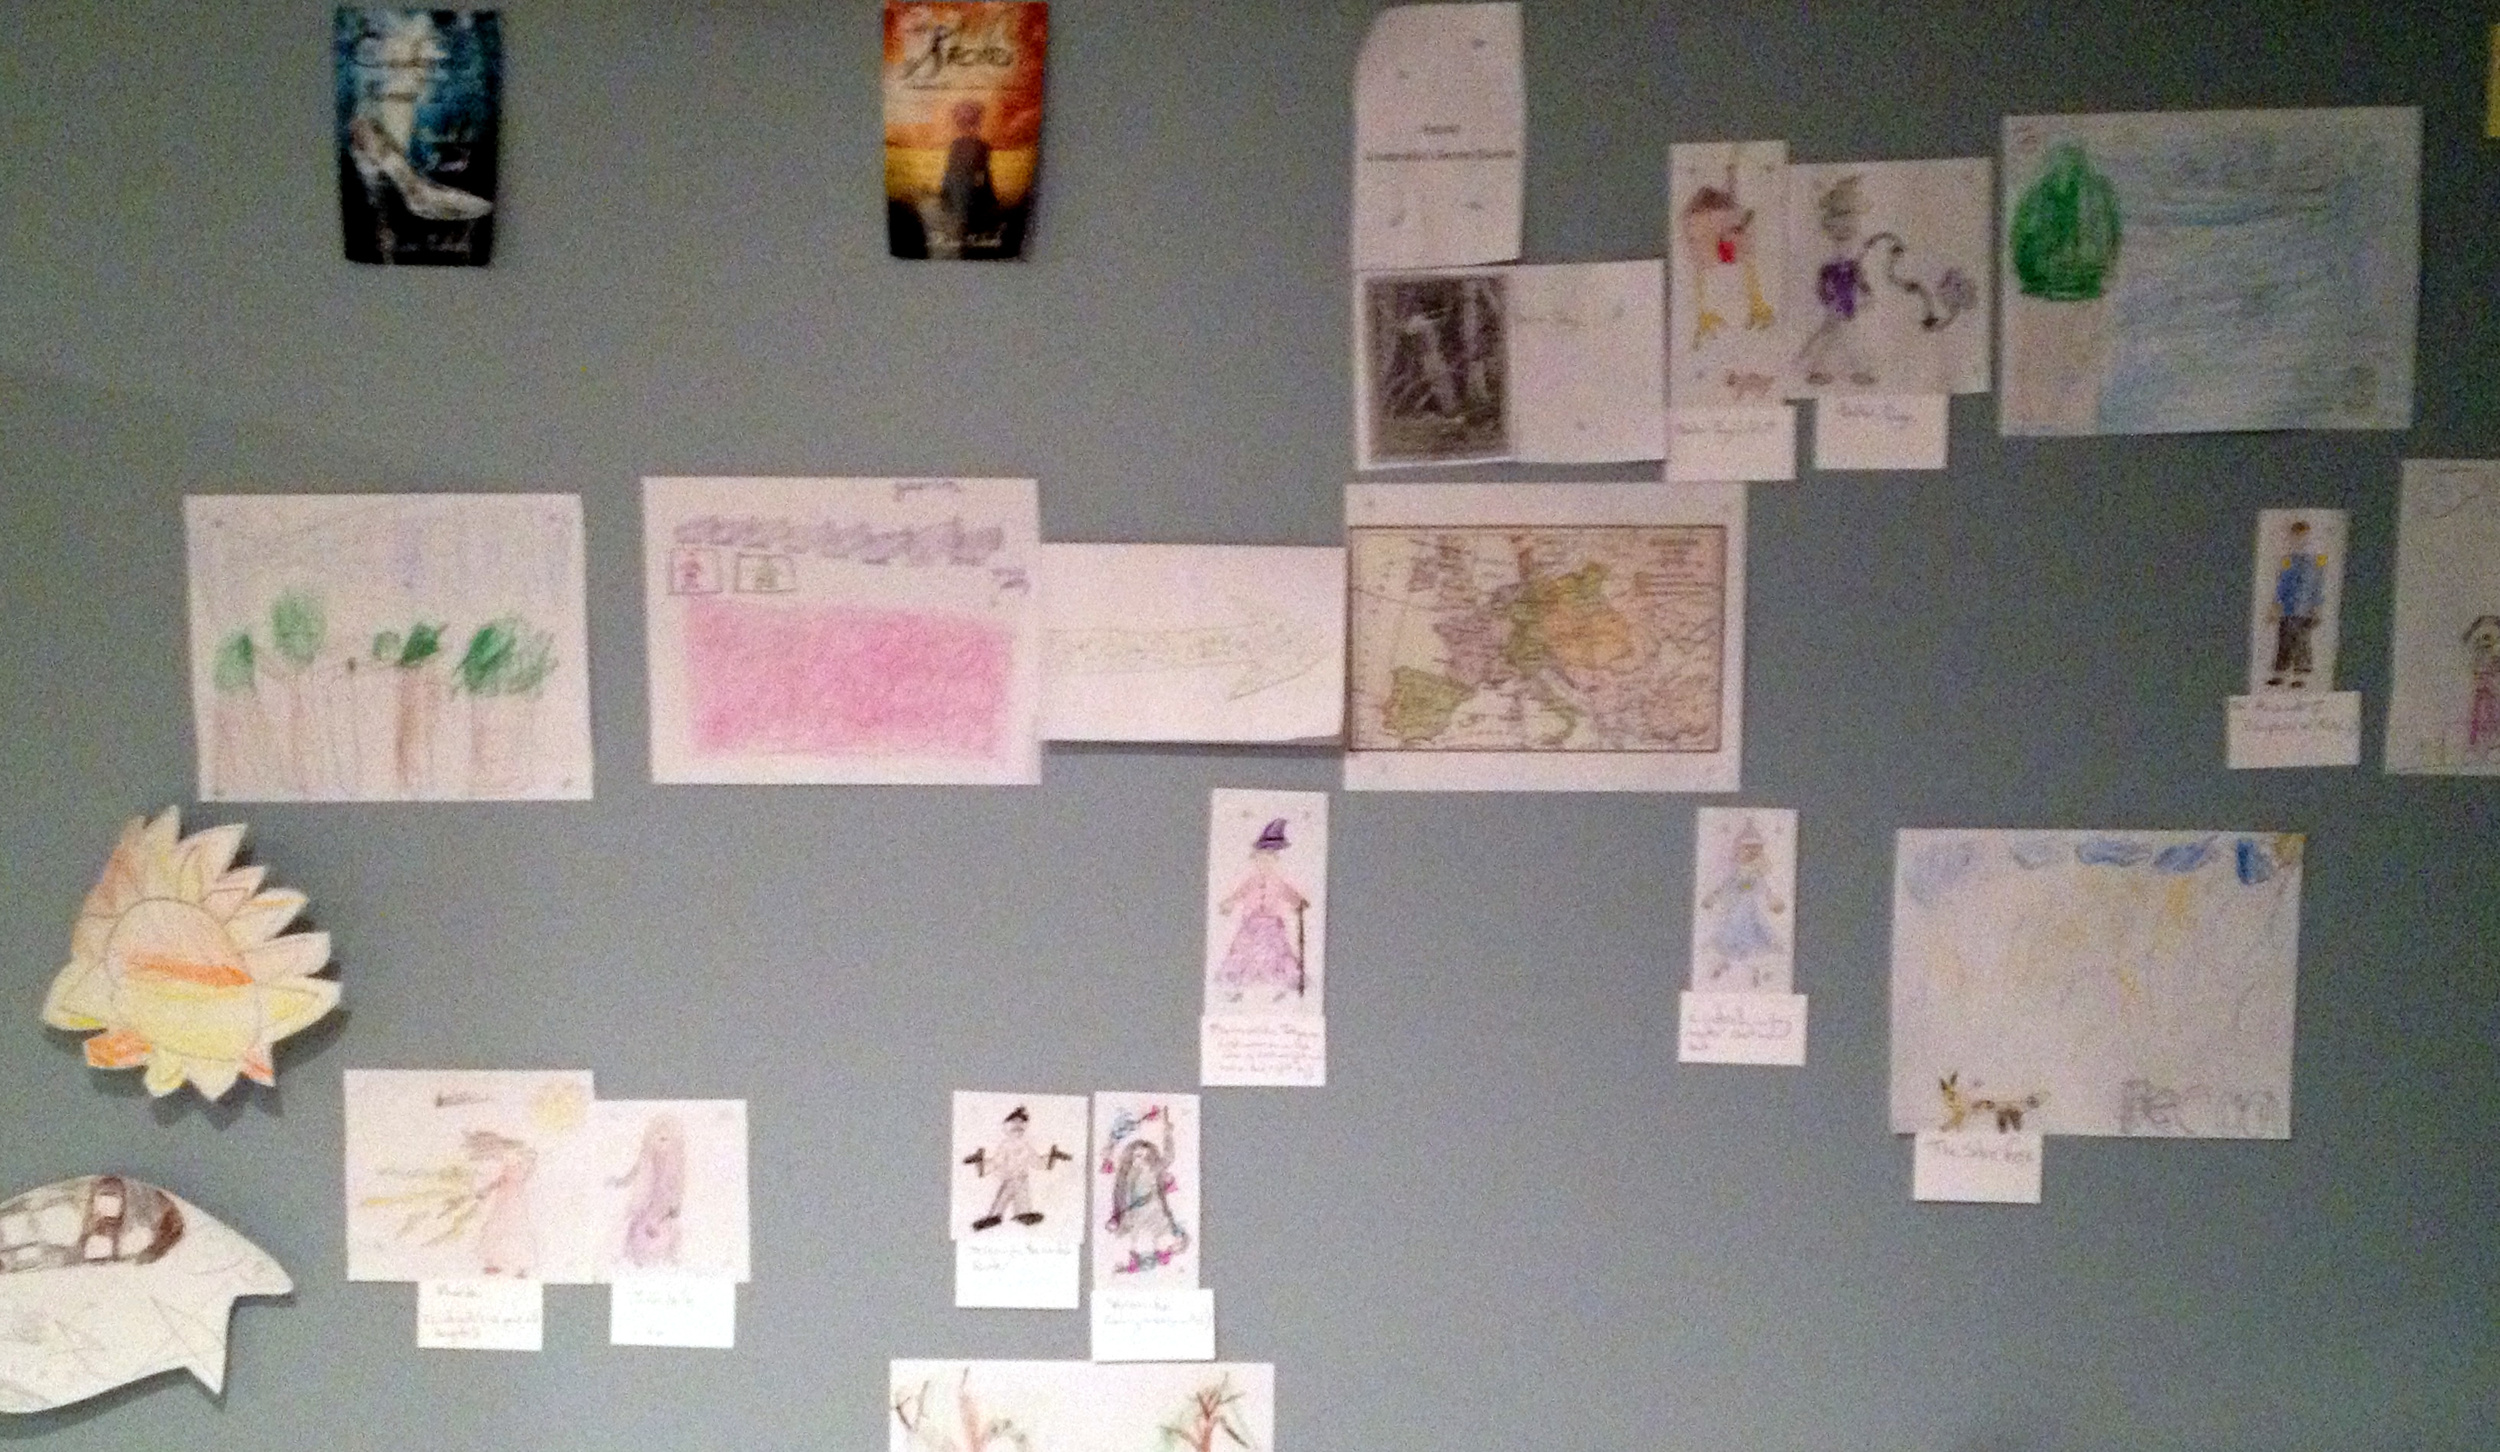 My kids' artwork and interpretation of characters in my book on my bedroom wall.